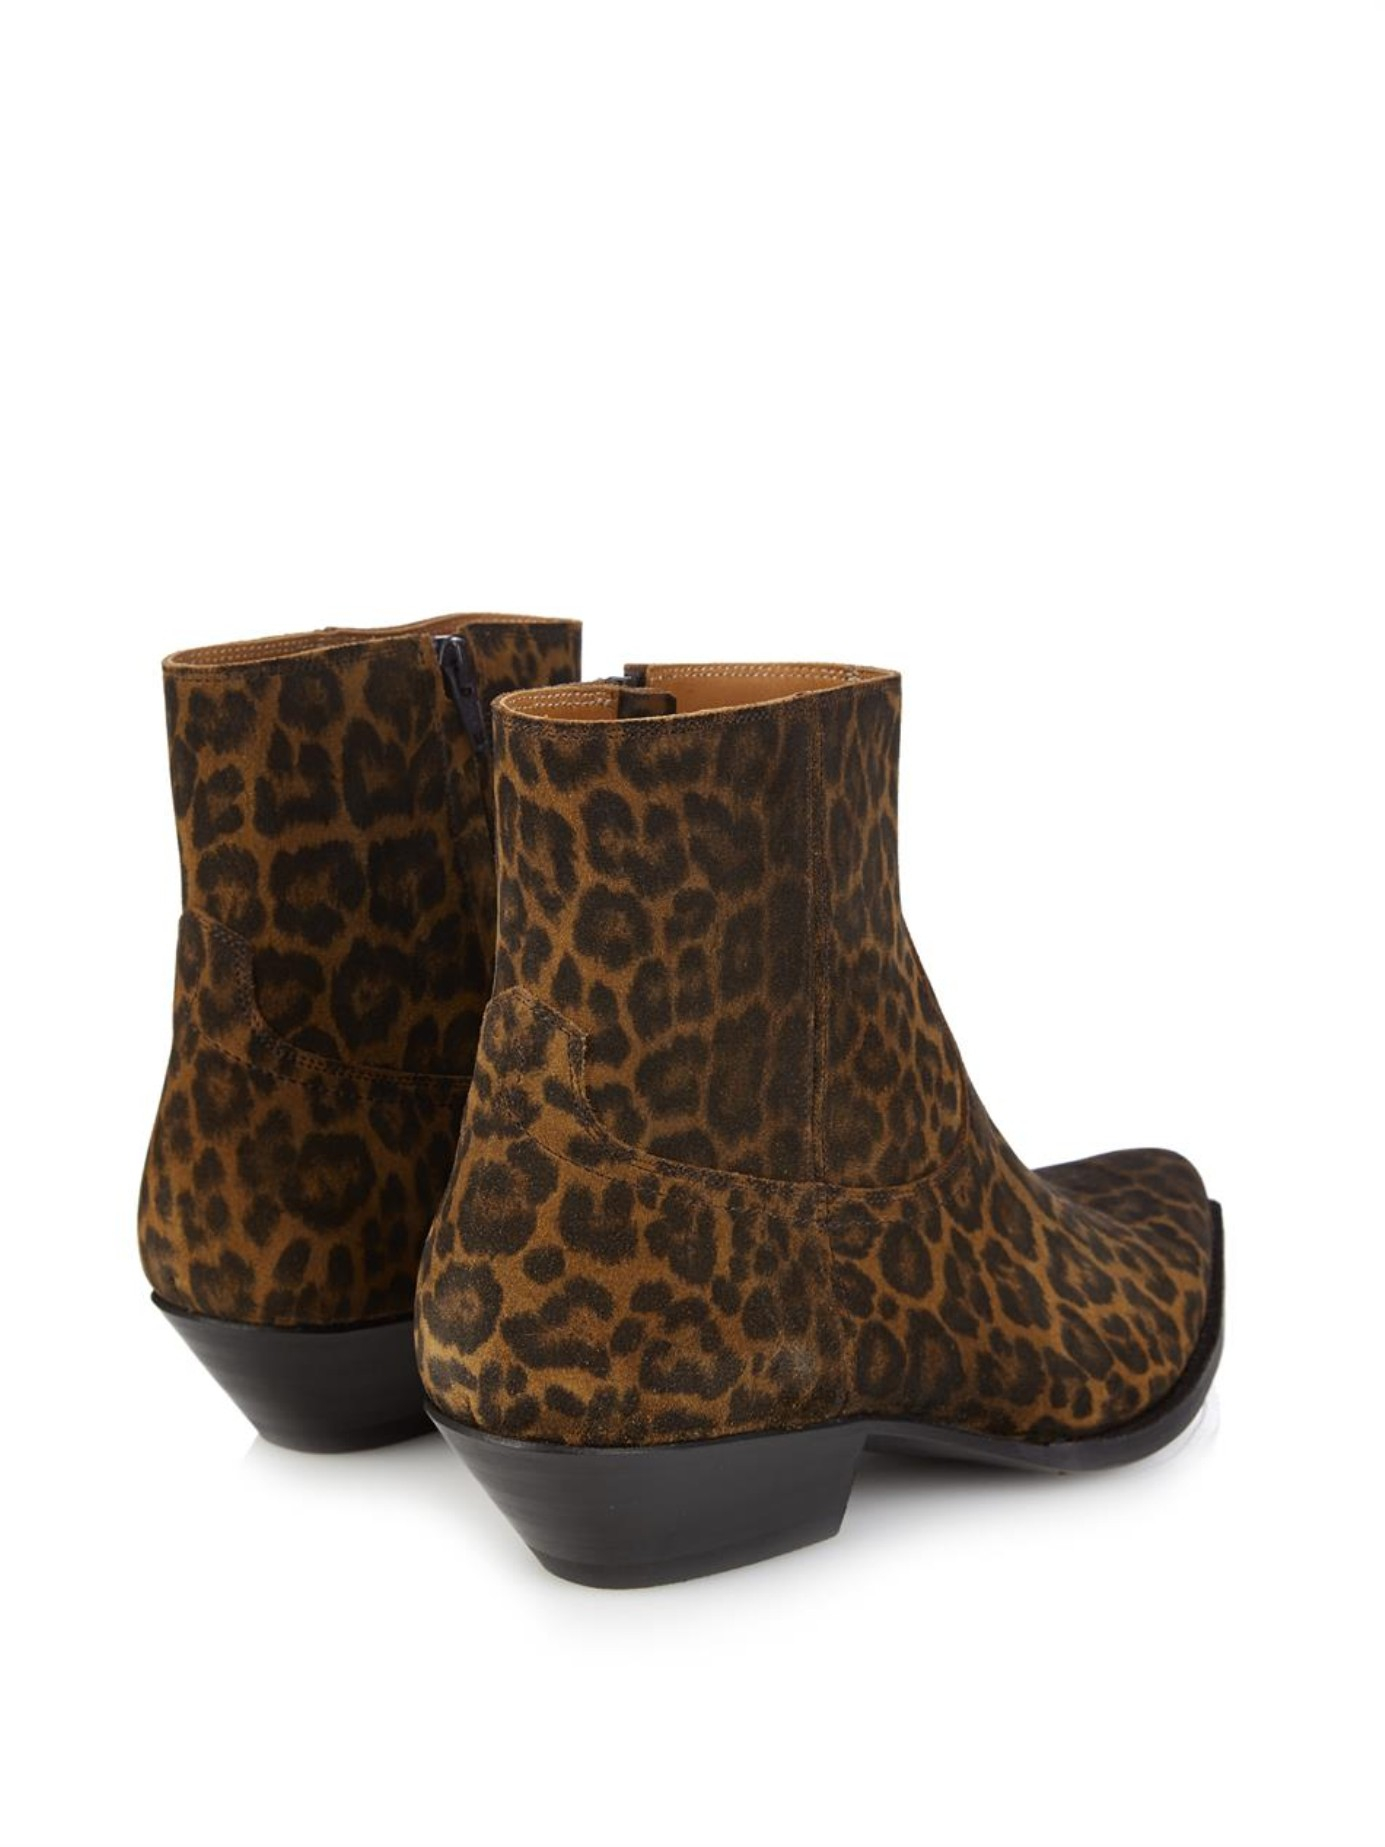 9b2977c1805 Saint Laurent Leopard-Print Suede Ankle Boots in Brown for Men - Lyst